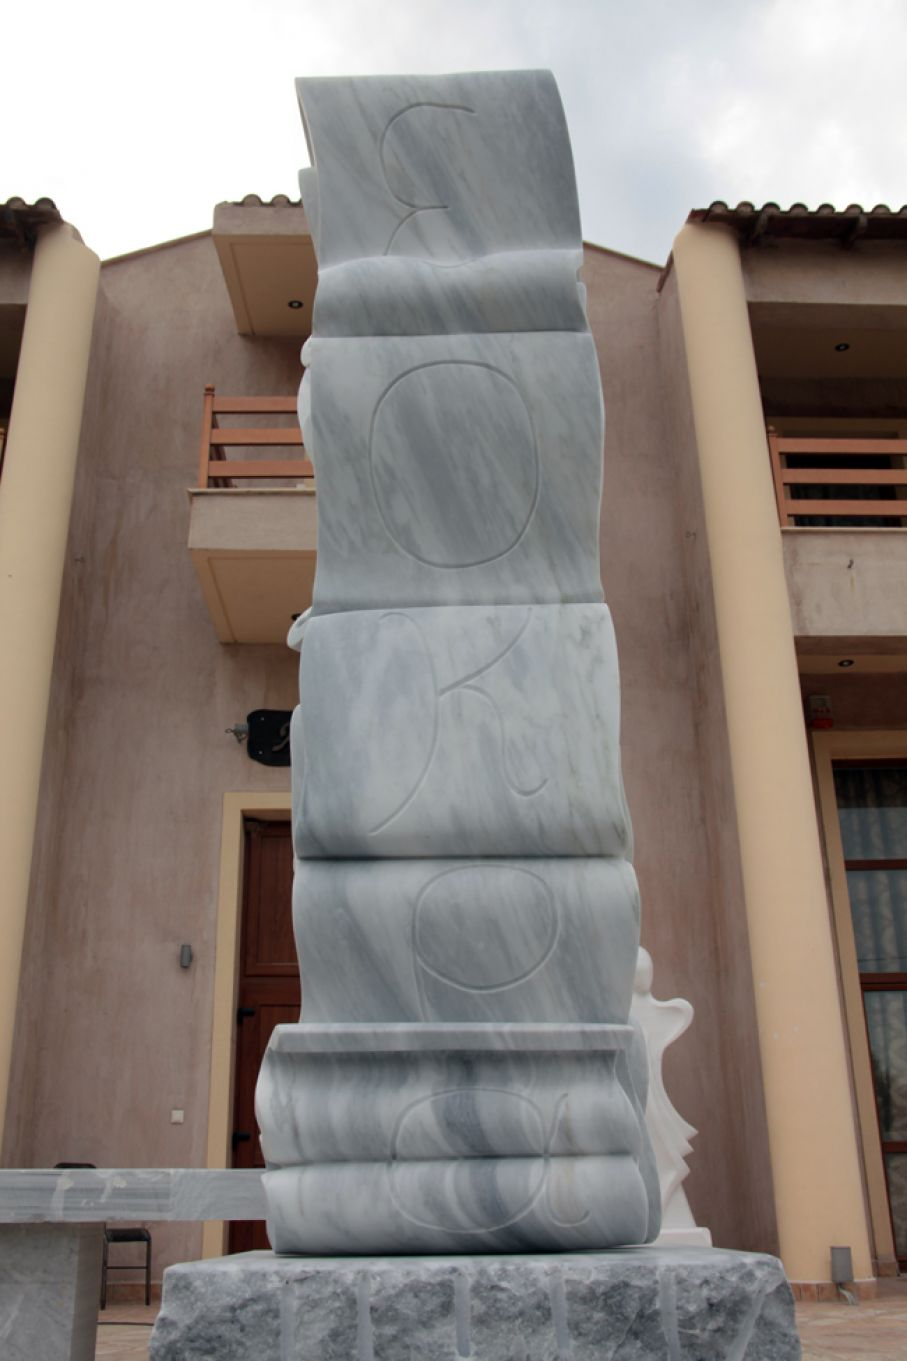 "Original marble sculpture of Michael Vouzounerakis, completed on August 2013, within Myrό Antiques House premises, in Souroti, Thessaloniki, GREECE, as part of the Greek Marble Initiative, bearing the title ""Riddle"". Dimensions: 280 X 80 X 70 cm (without its base)."